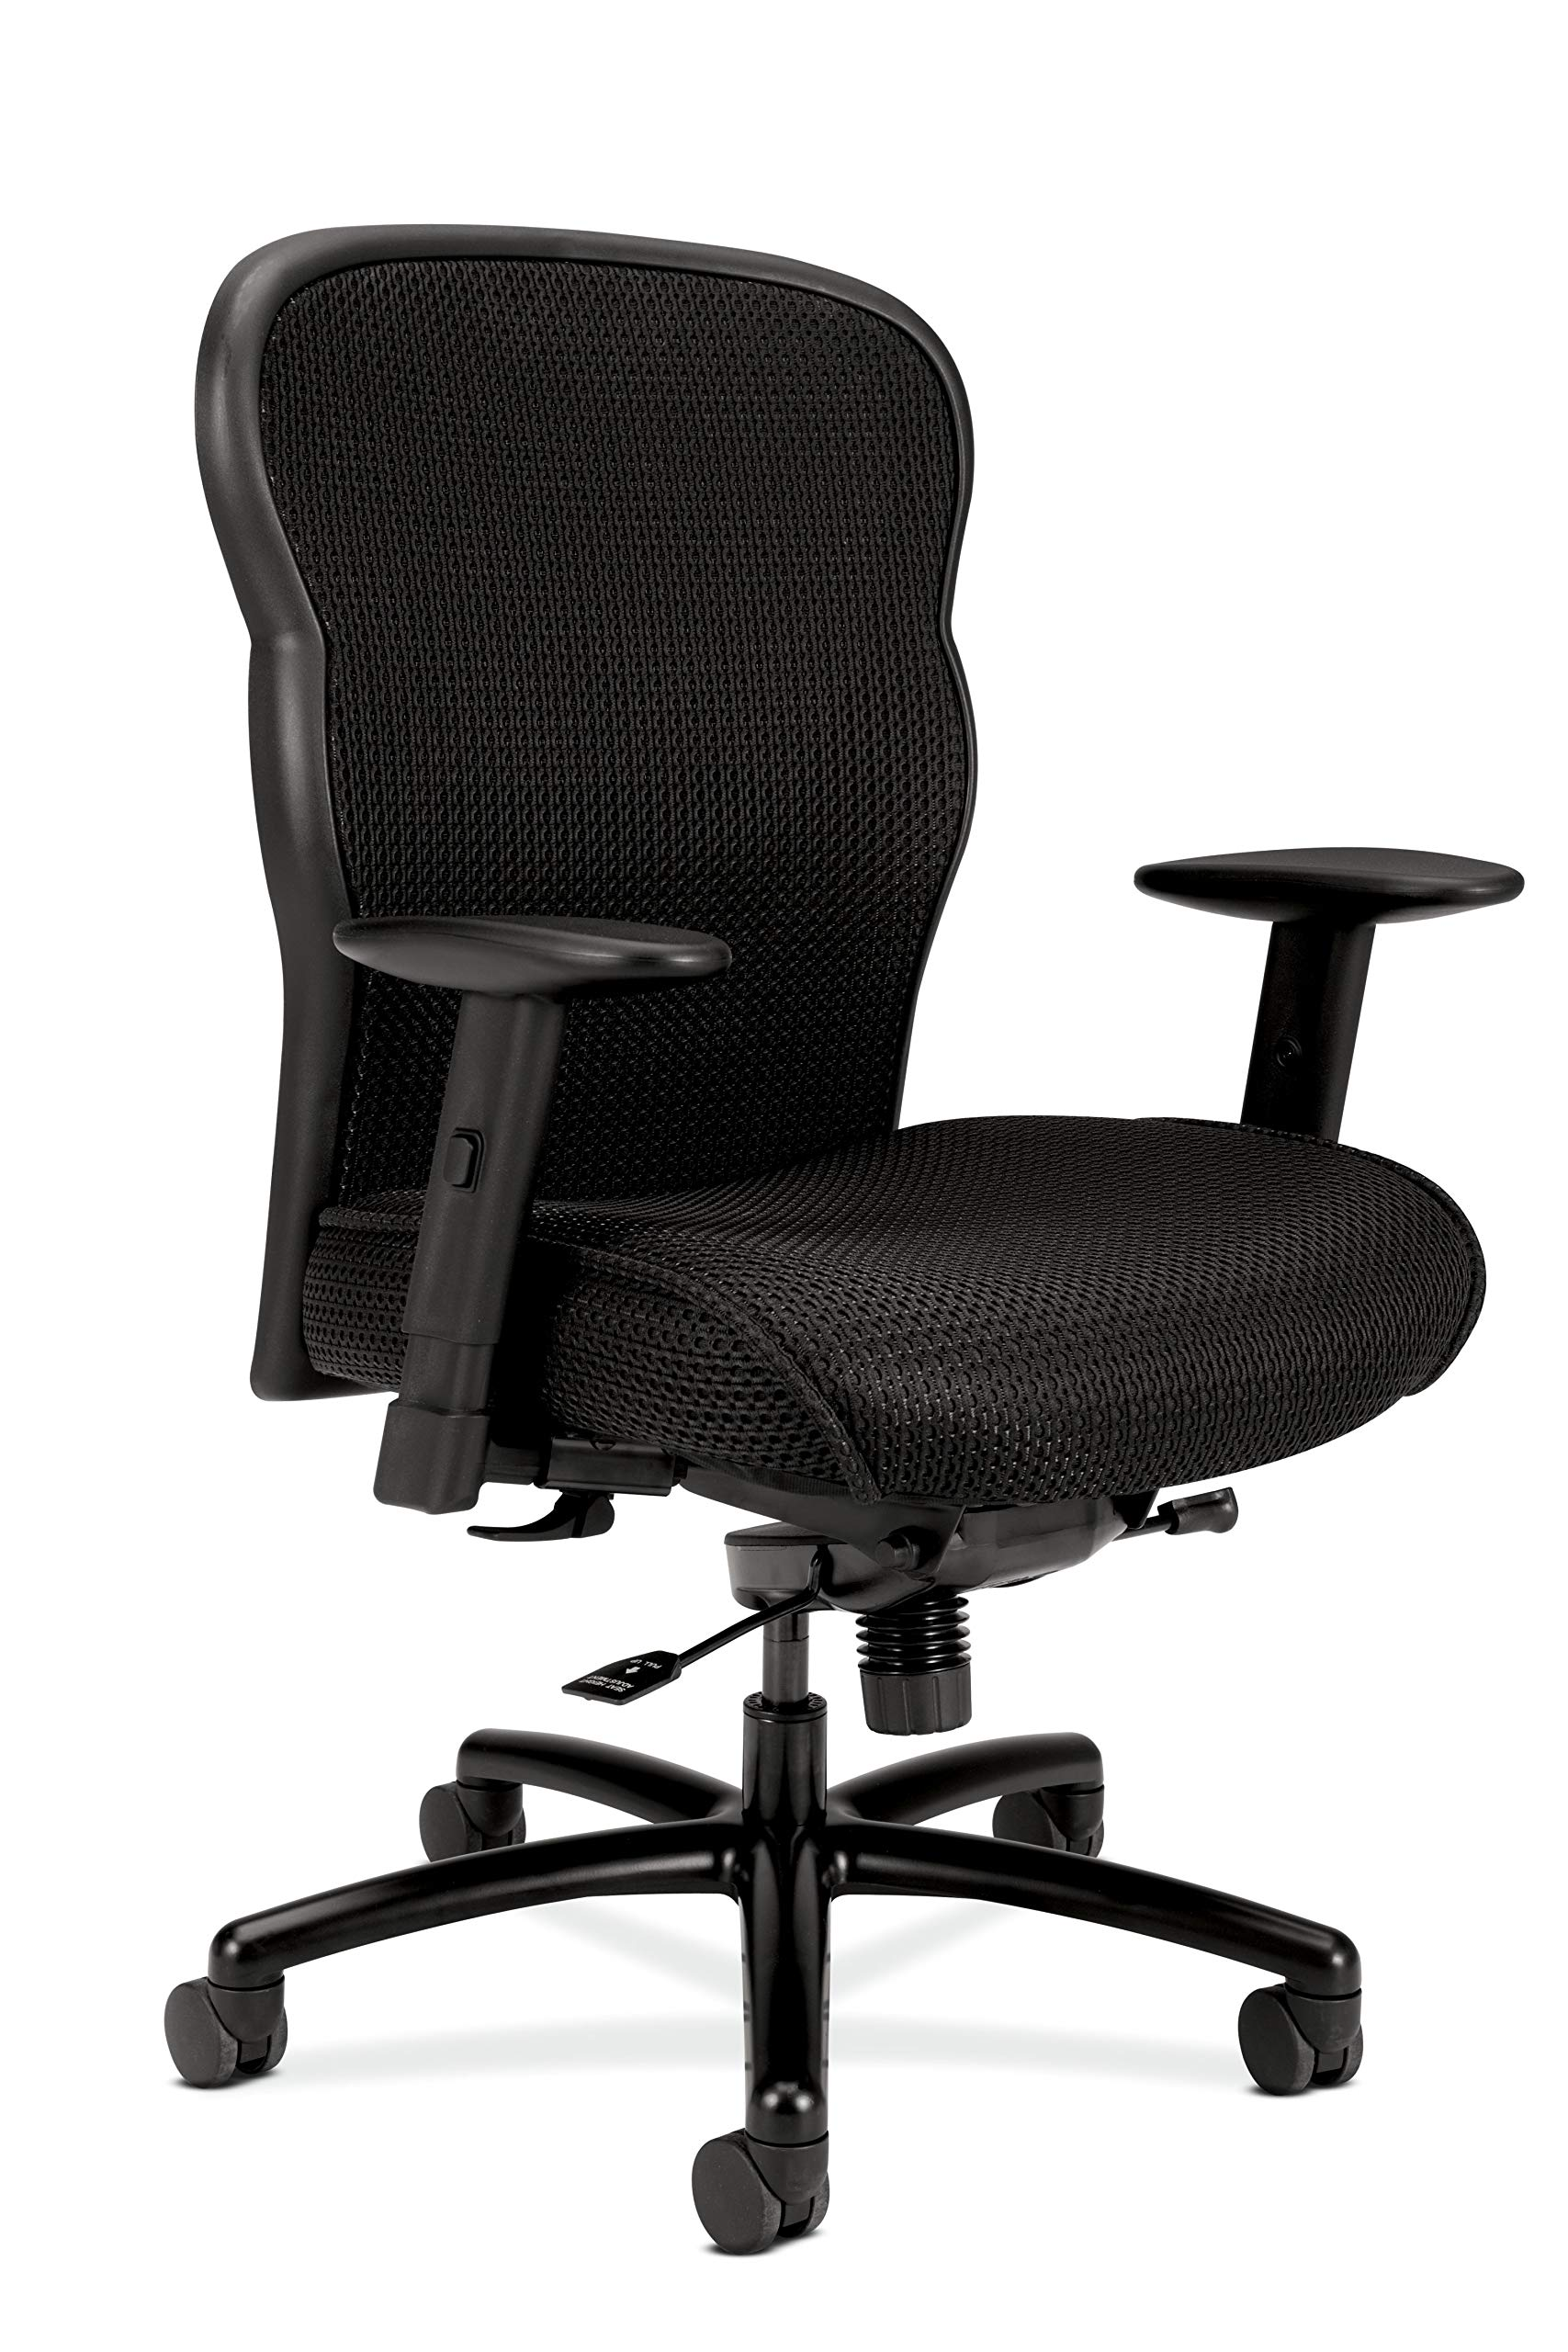 HON Wave Big and Tall Executive Chair - Mesh Office Chair with Adjustable Arms, Black (VL705) by HON